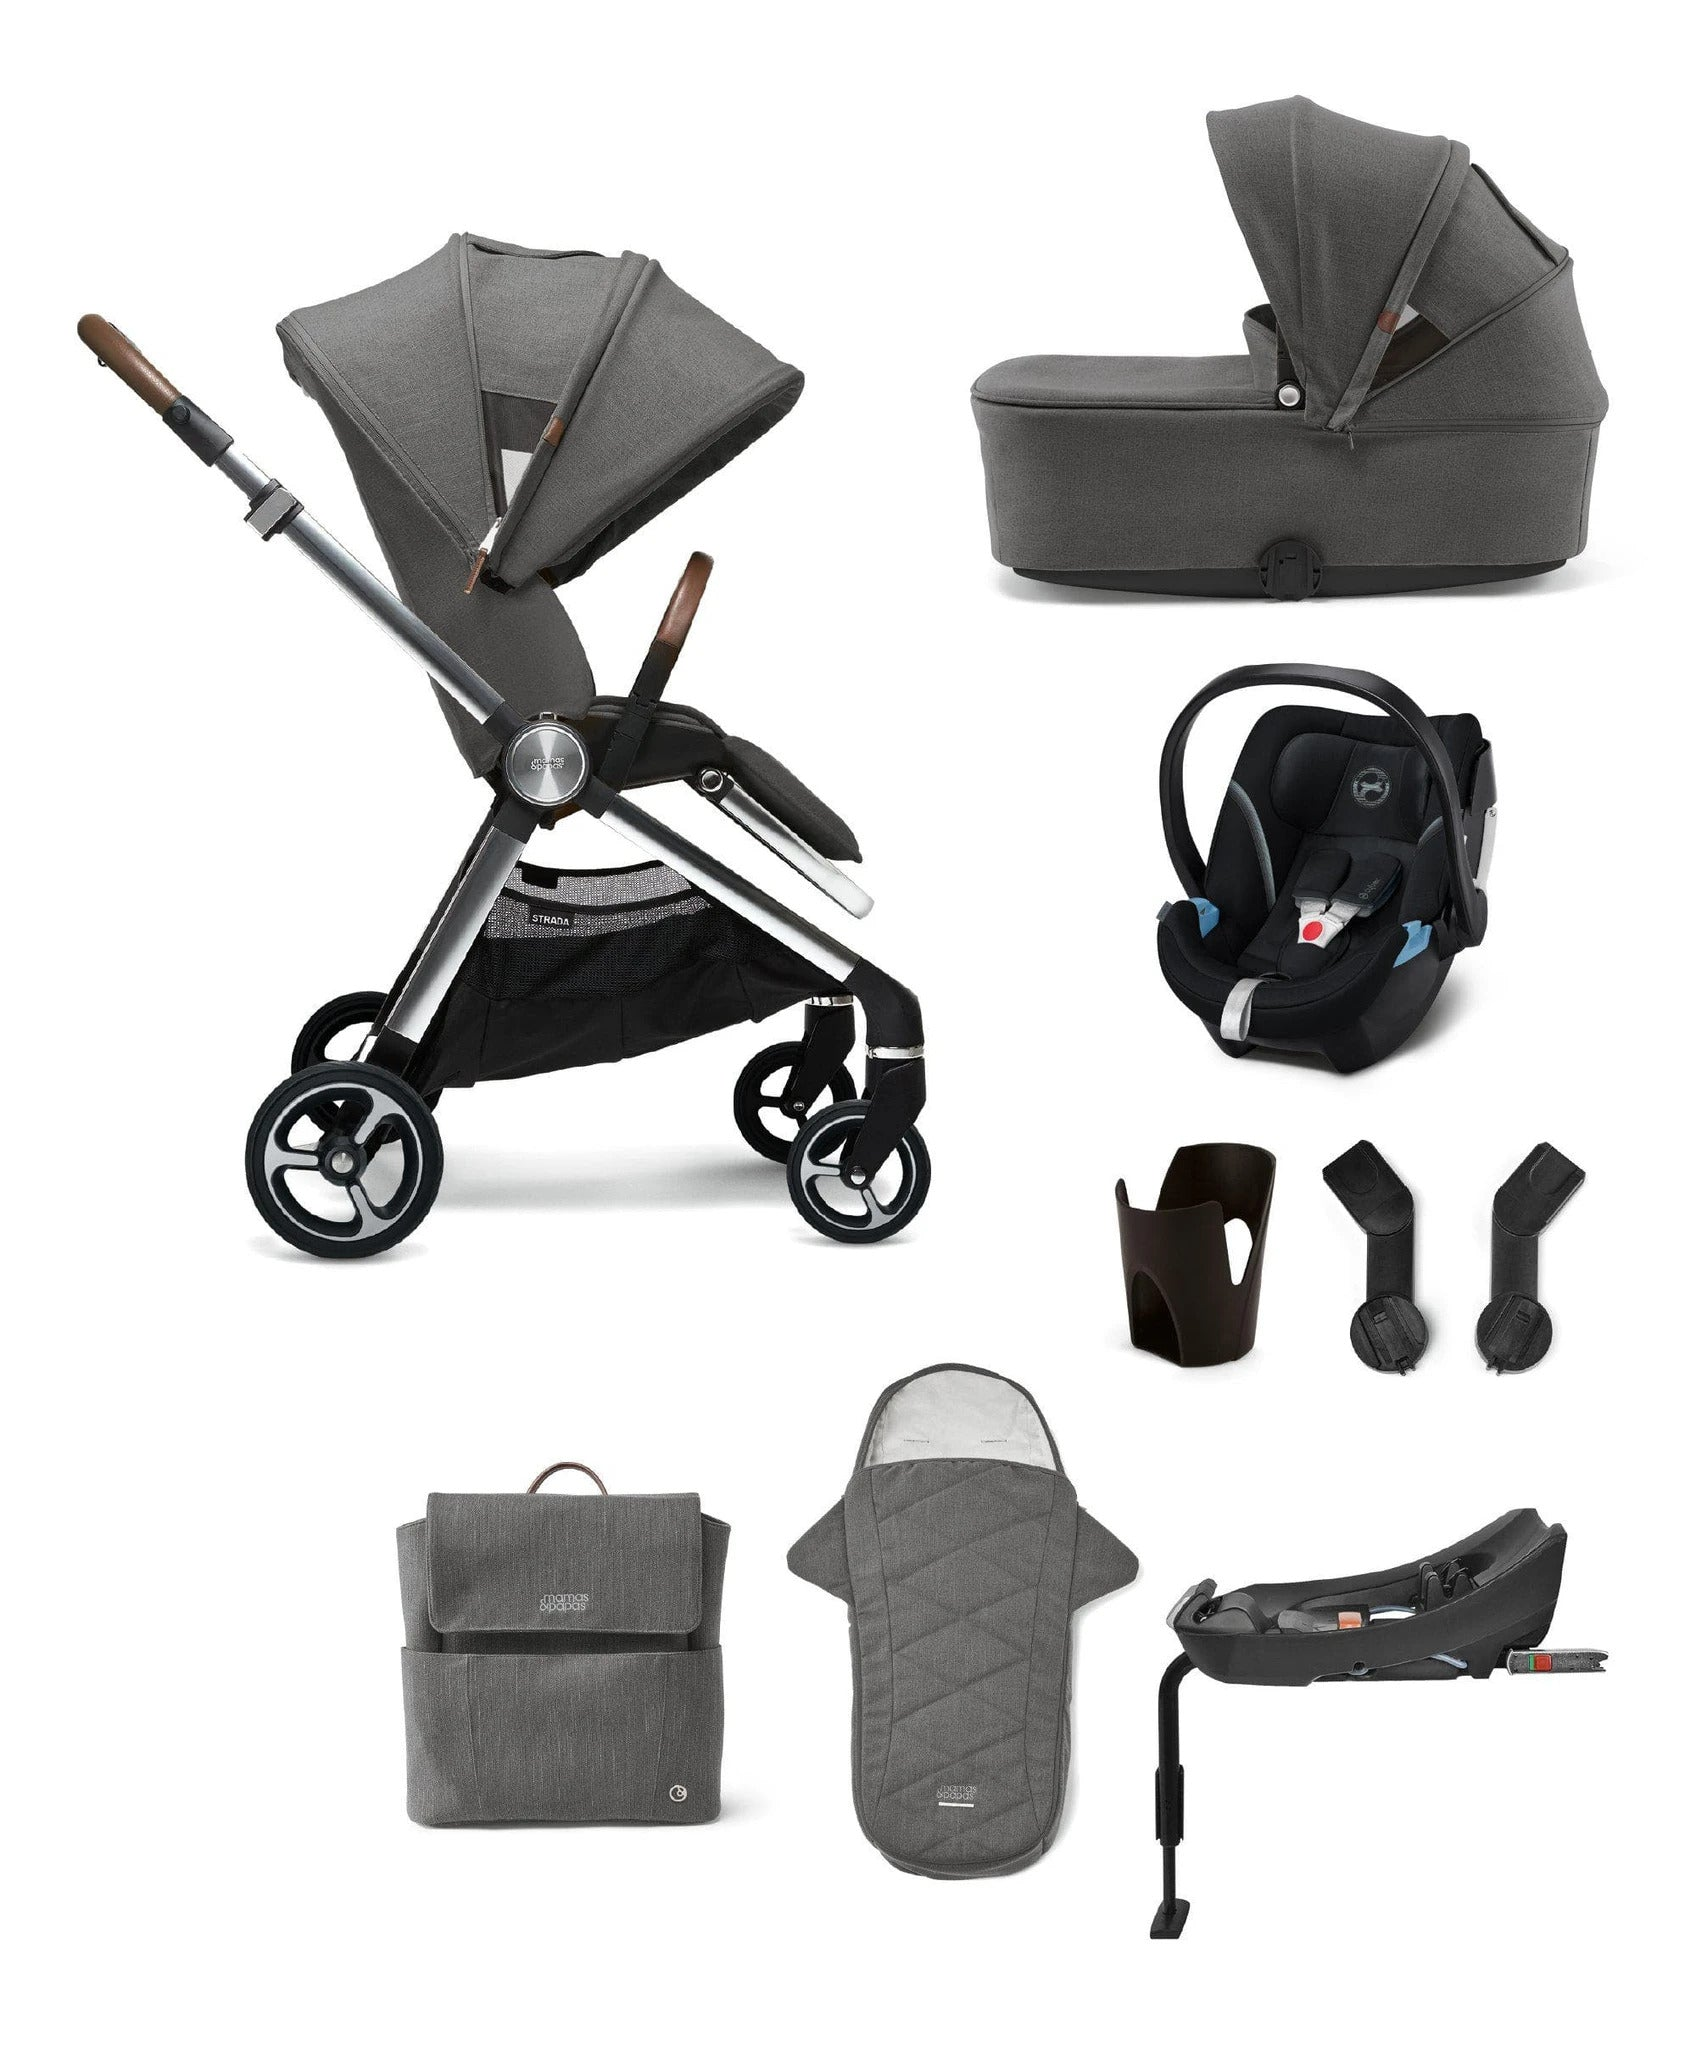 Strada Complete Kit (Inc Pushchair, Carrycot, Adaptors, Cupholder, Bag, Footmuff, Aton 5 - Black & Isofix Base)